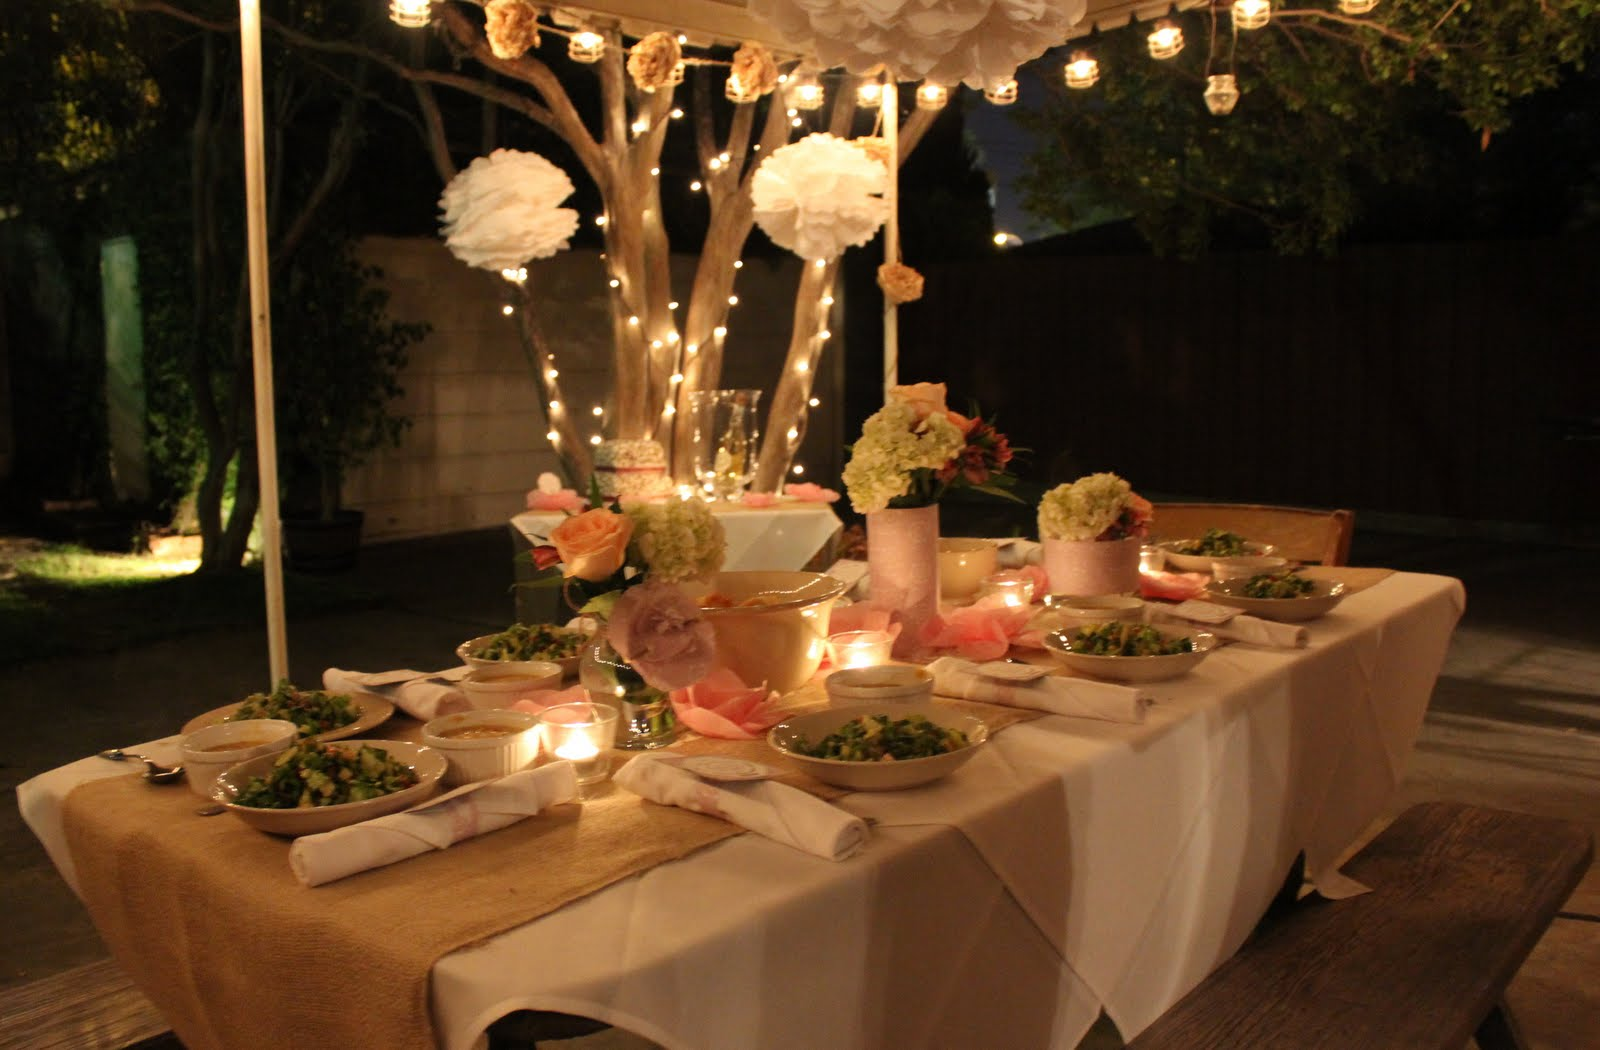 Juneberry Lane: Outdoor Champagne Soirée - A Simple ...